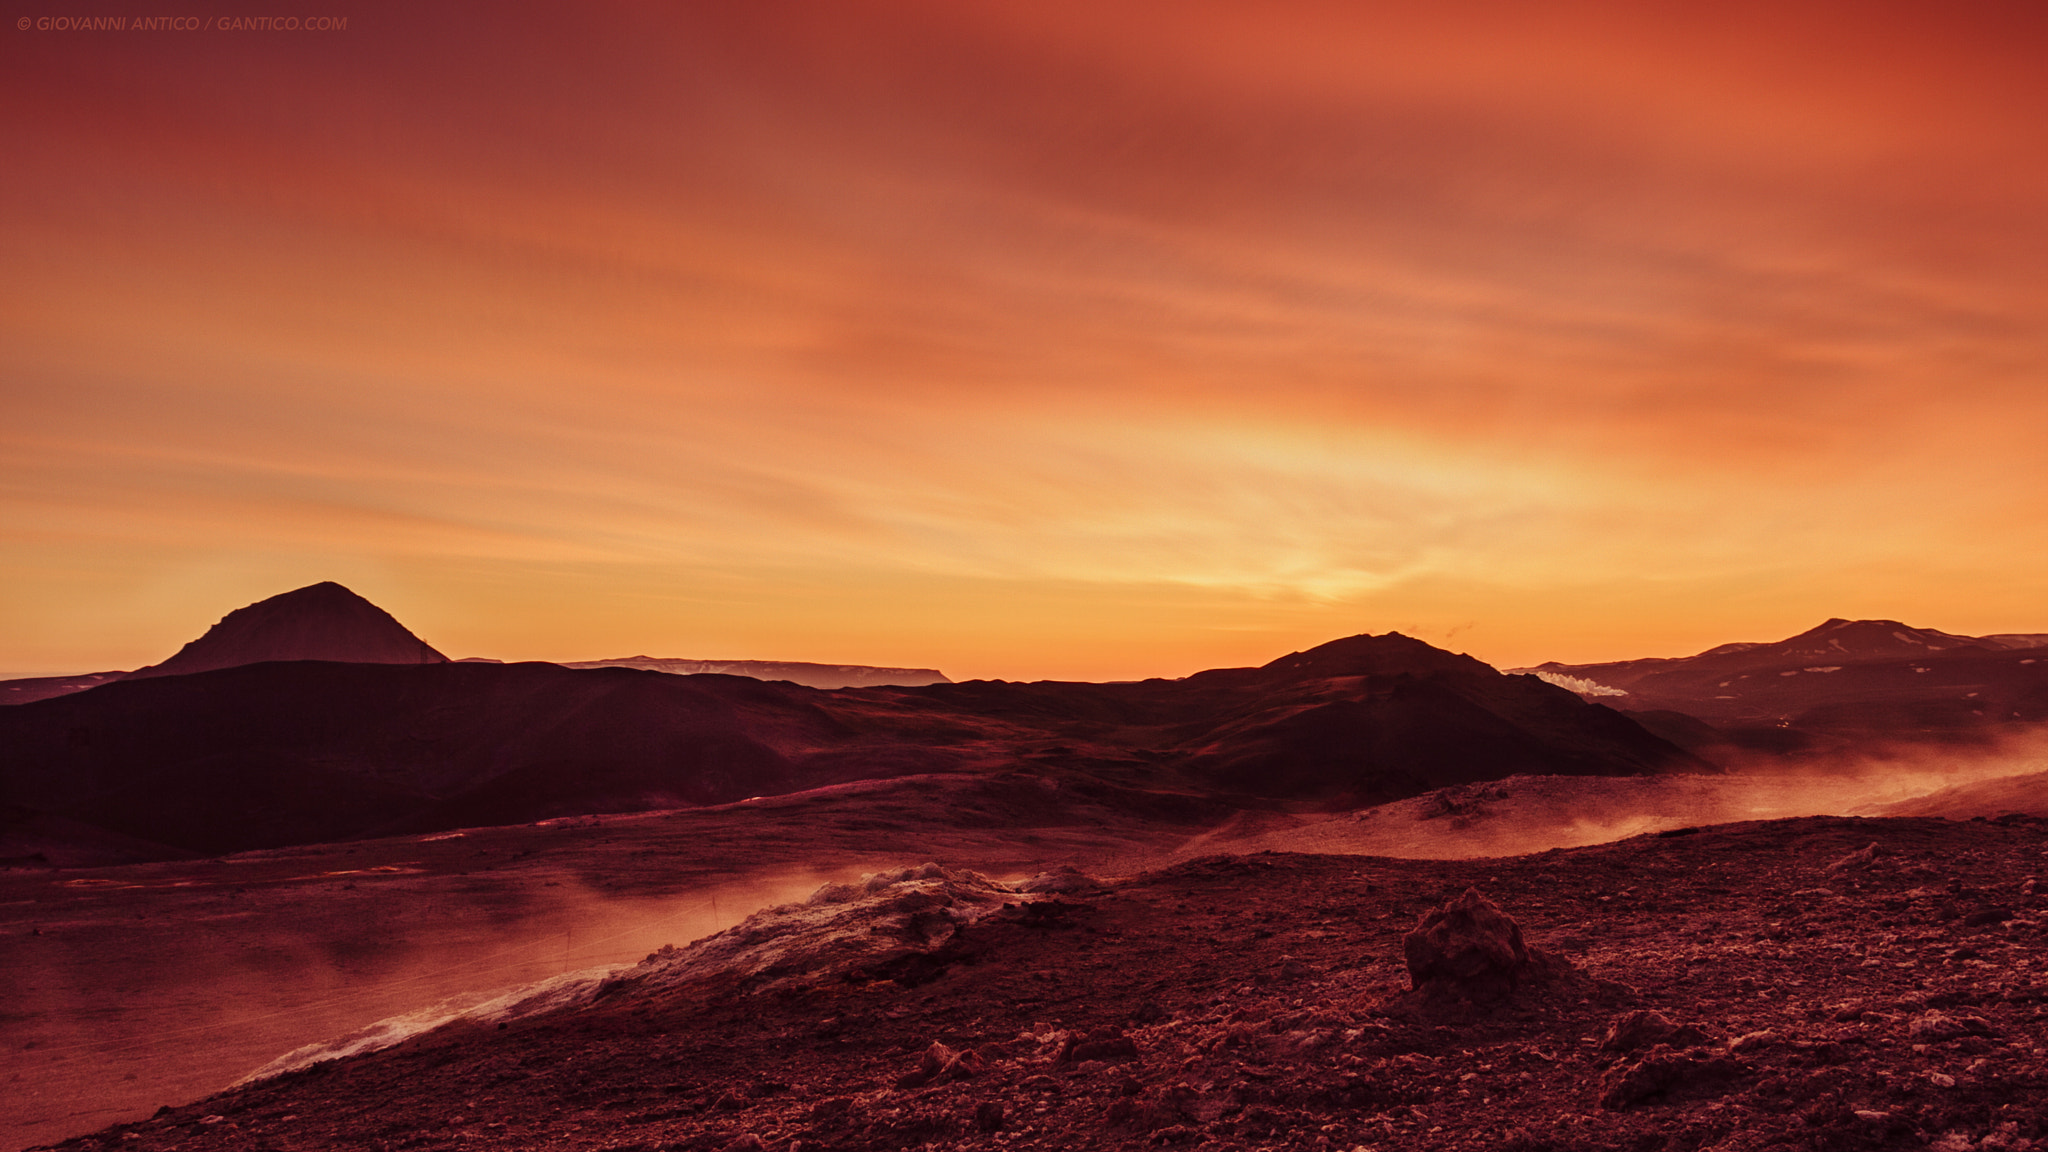 Photograph Life on Mars by Giovanni Antico on 500px